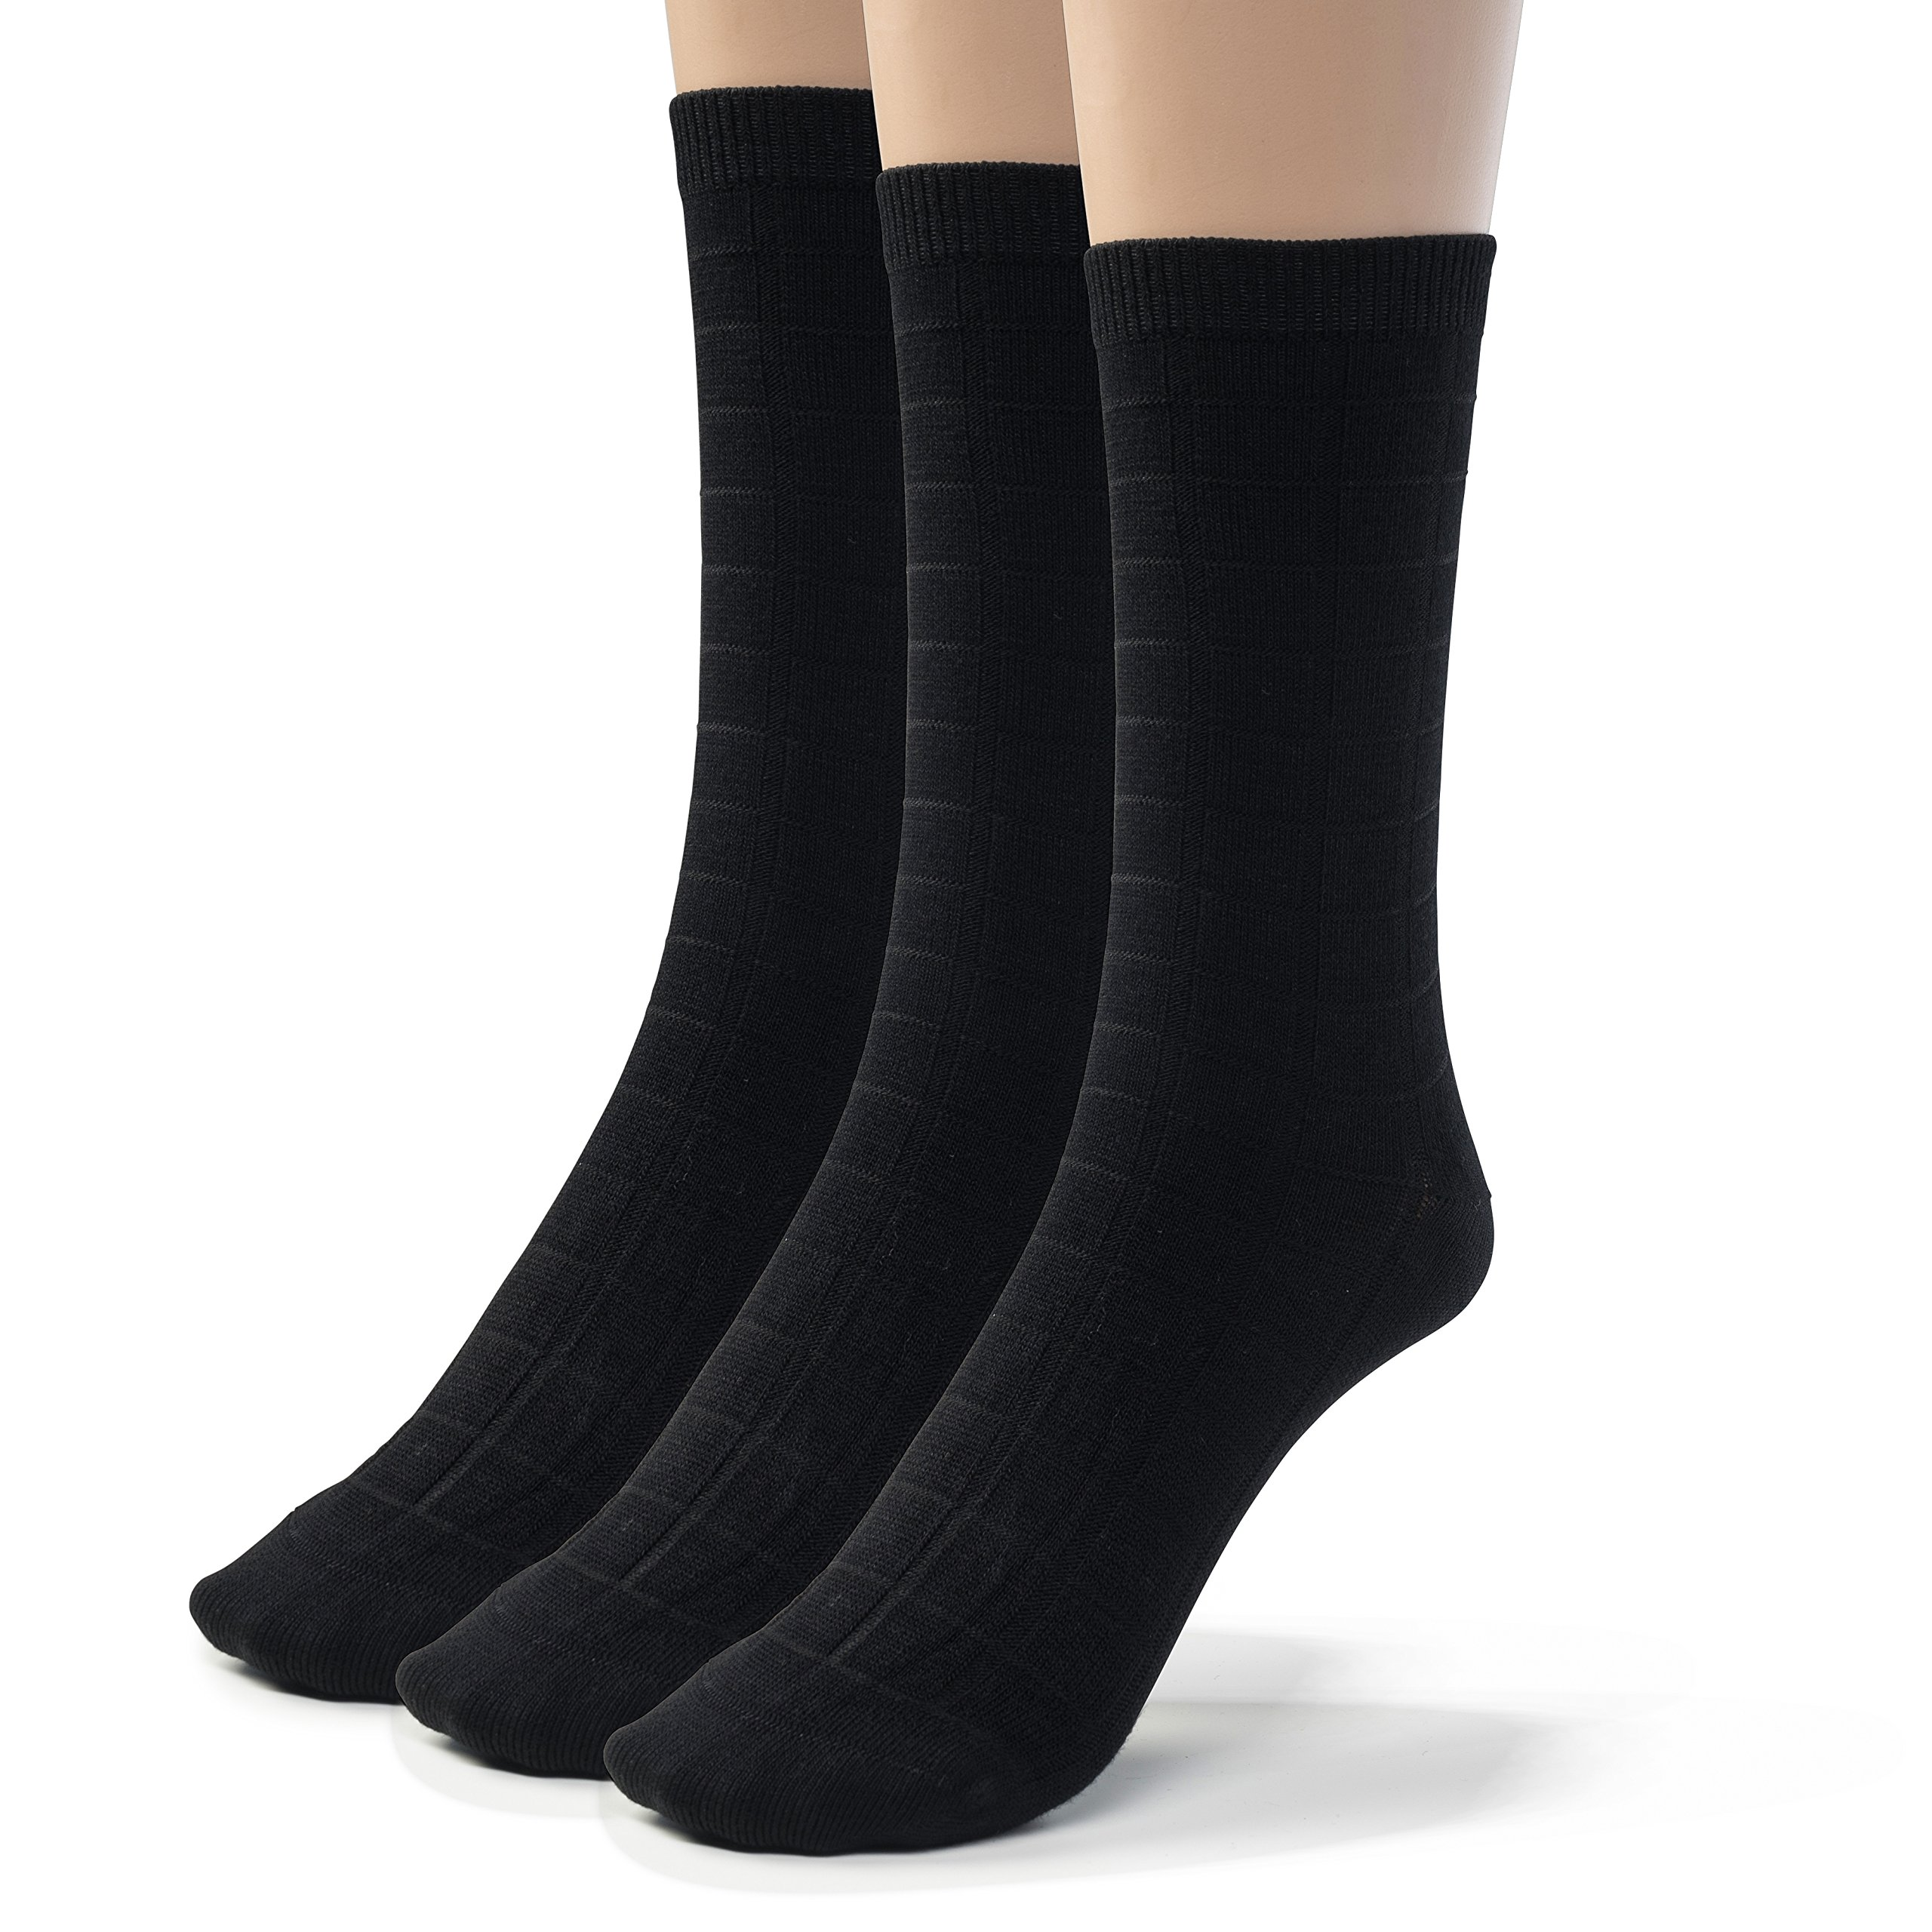 Silky Toes 3 Pk Boy's Textured Designed Cotton Dress Crew Casual Socks (Small (7-8), Black)